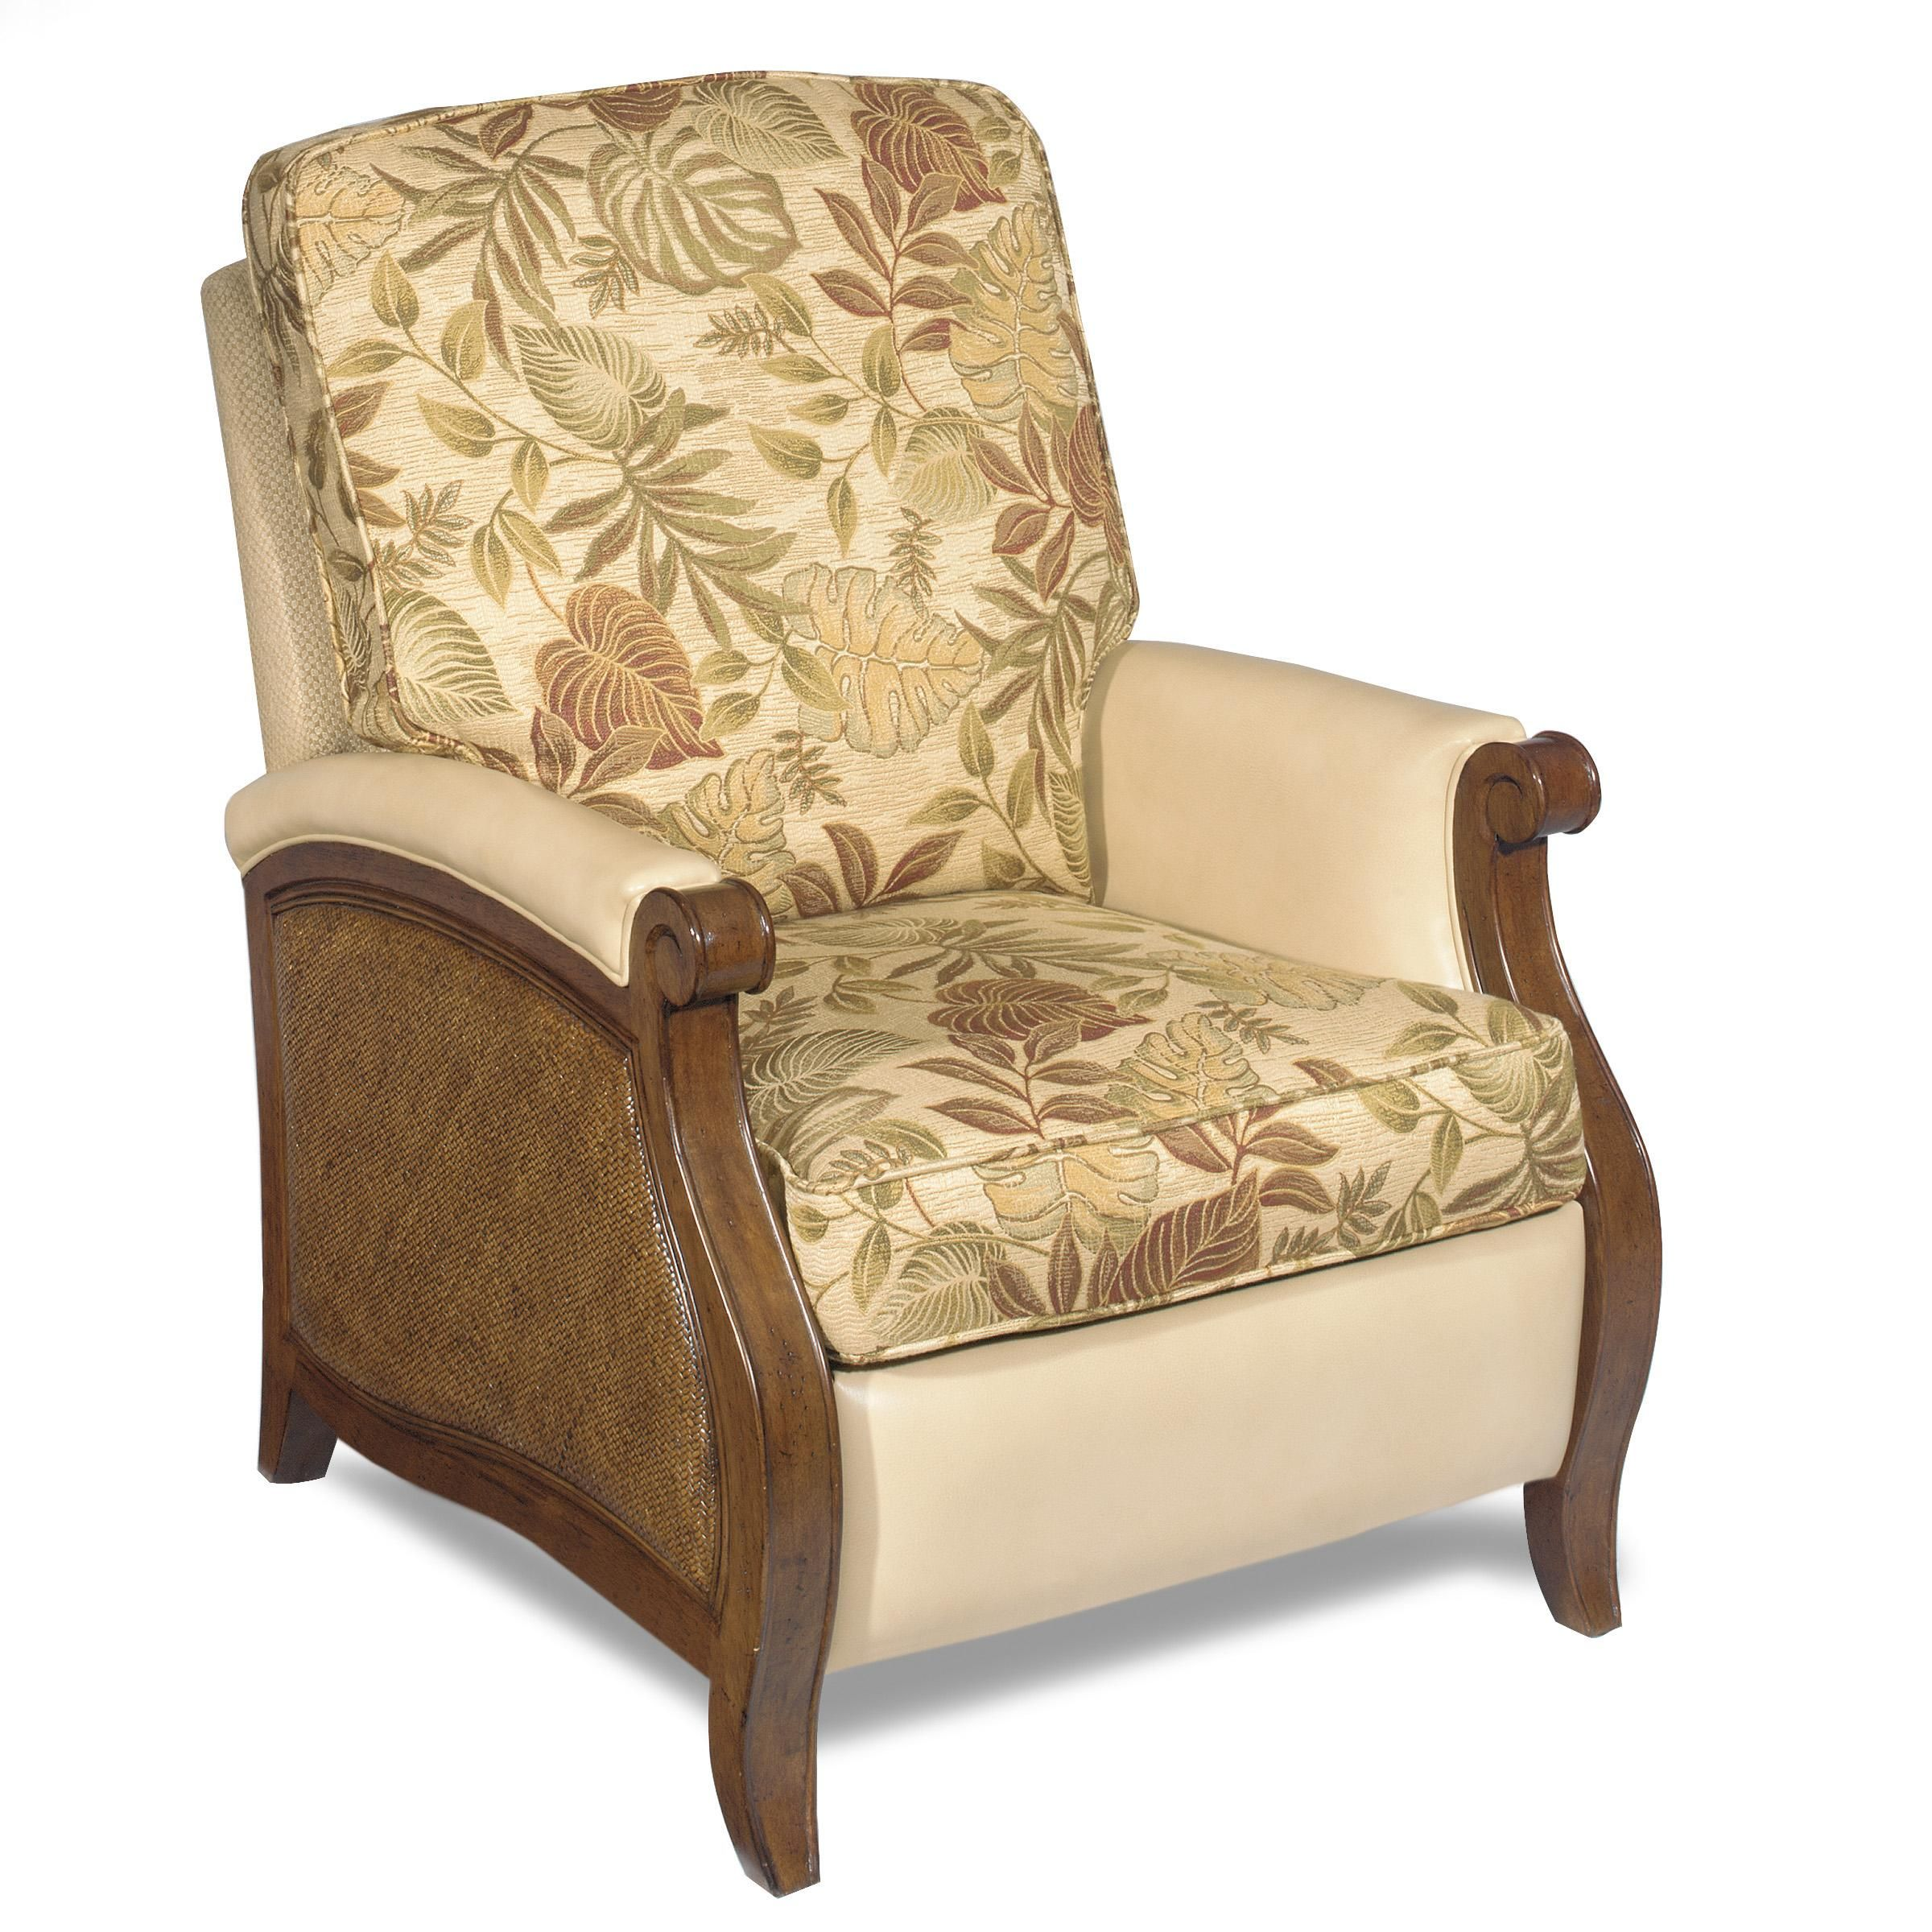 Hooker Furniture Windward Raffiaarm Dining Chair In Light: Windward Recliner By Hooker Furniture